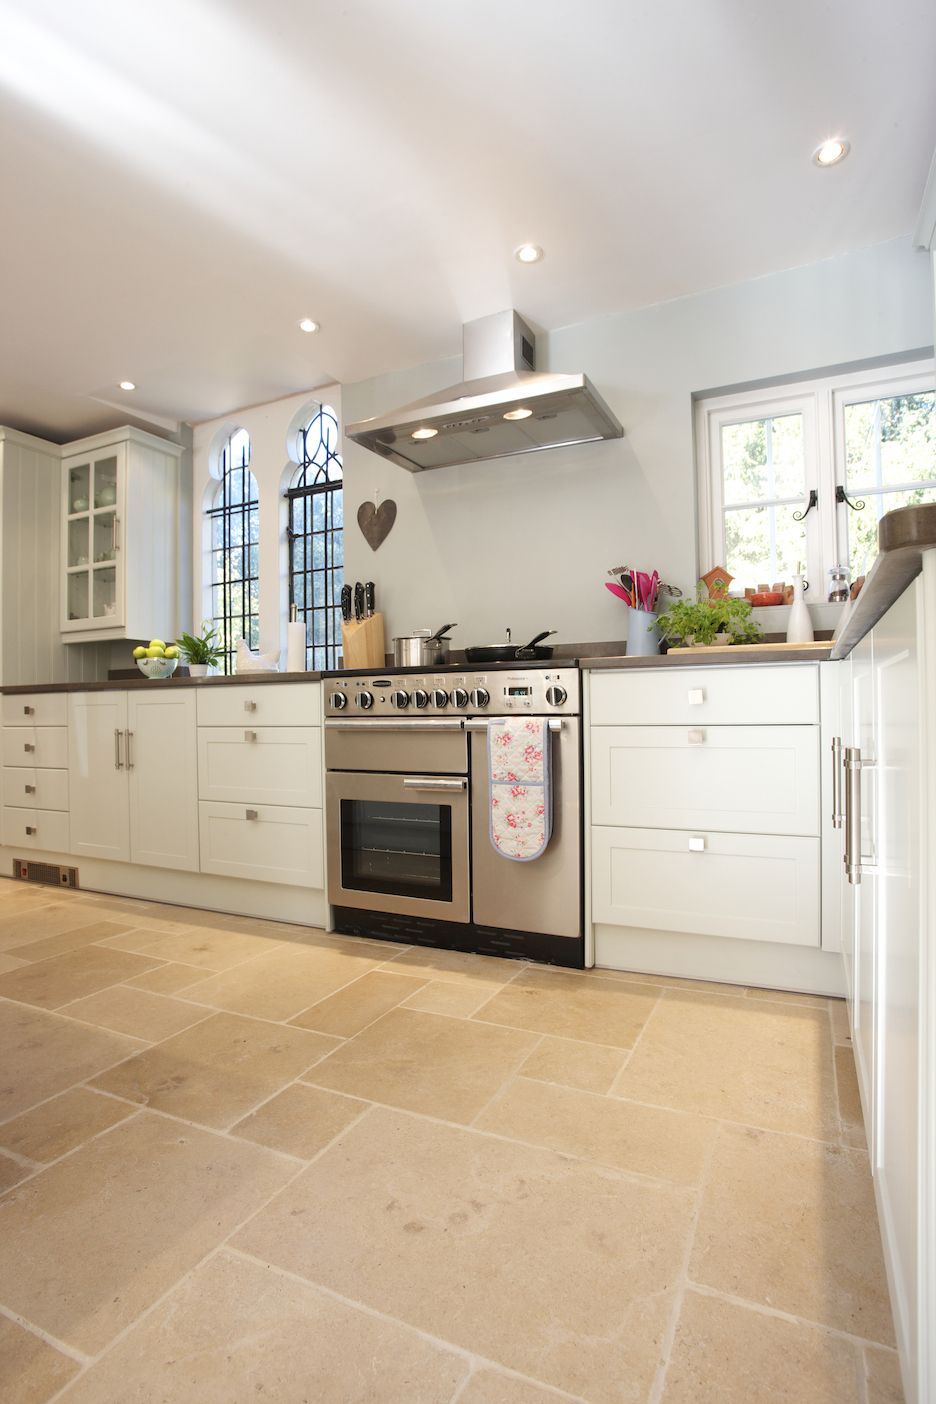 buscot limestone in a tumbled finish - country kitchen floor